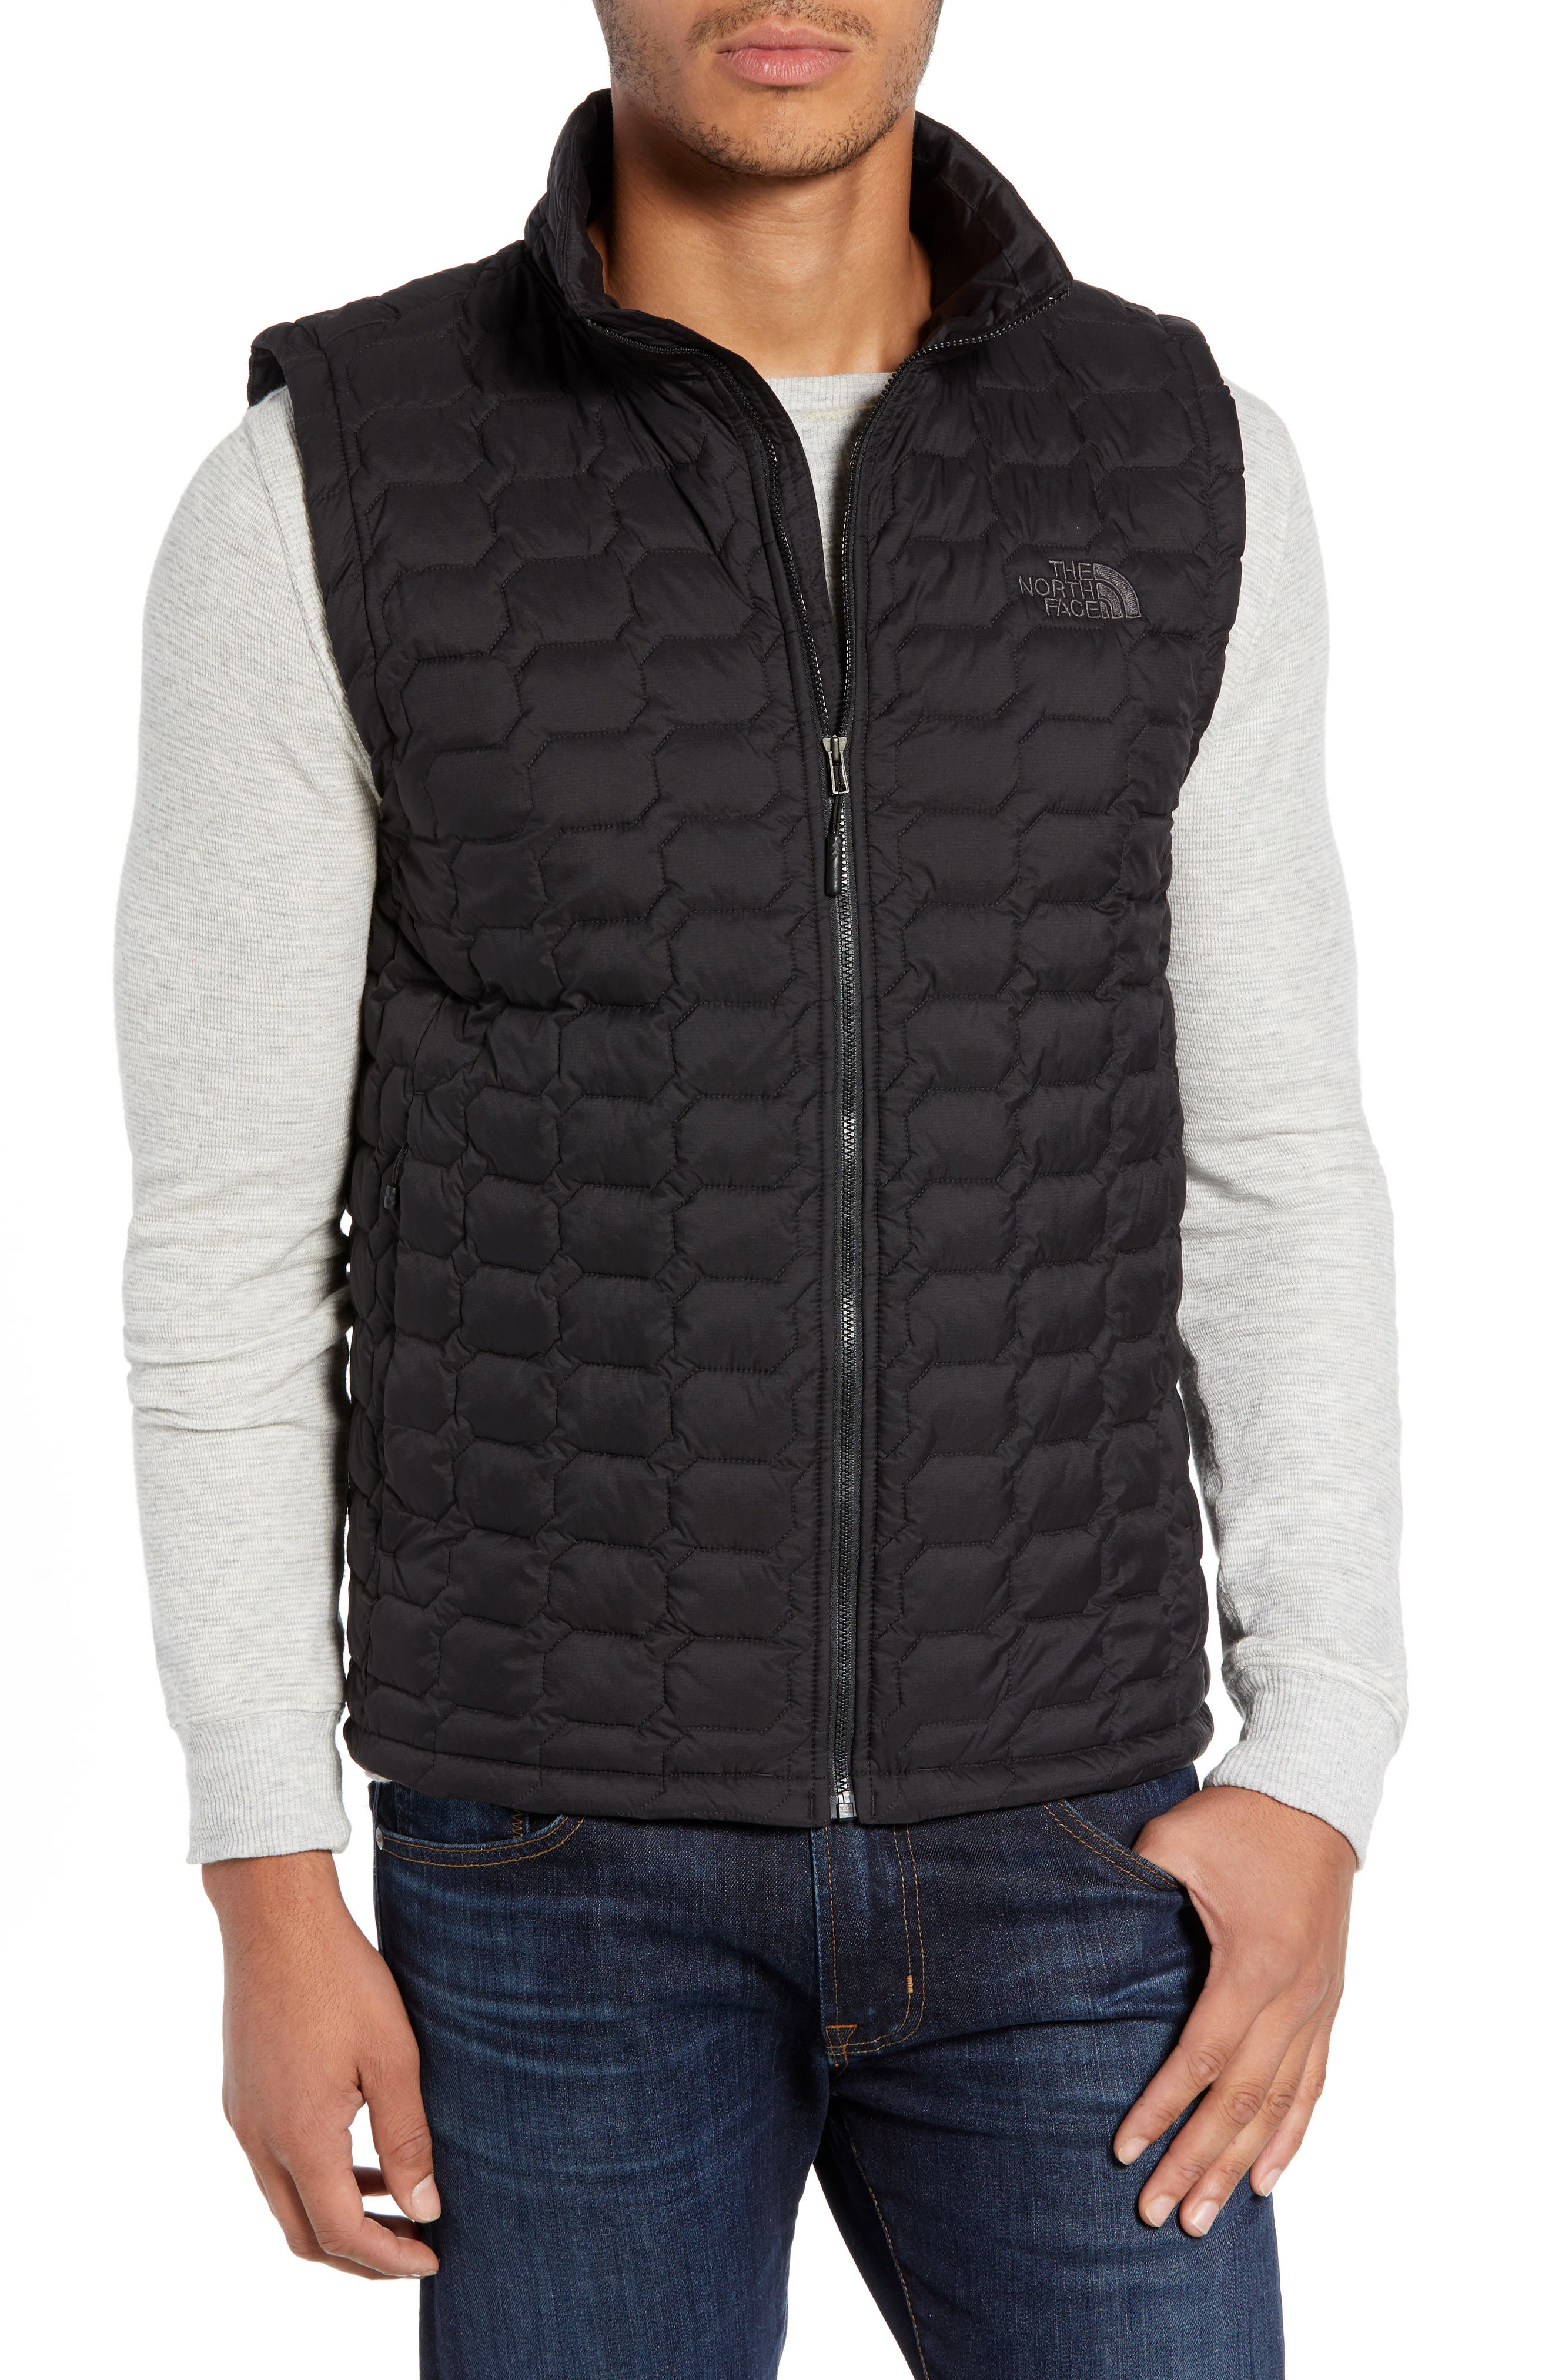 THE NORTH FACE Thermoball<sup>®</sup> PrimaLoft<sup>®</sup> Vest, Main, color, TNF BLACK MATTE